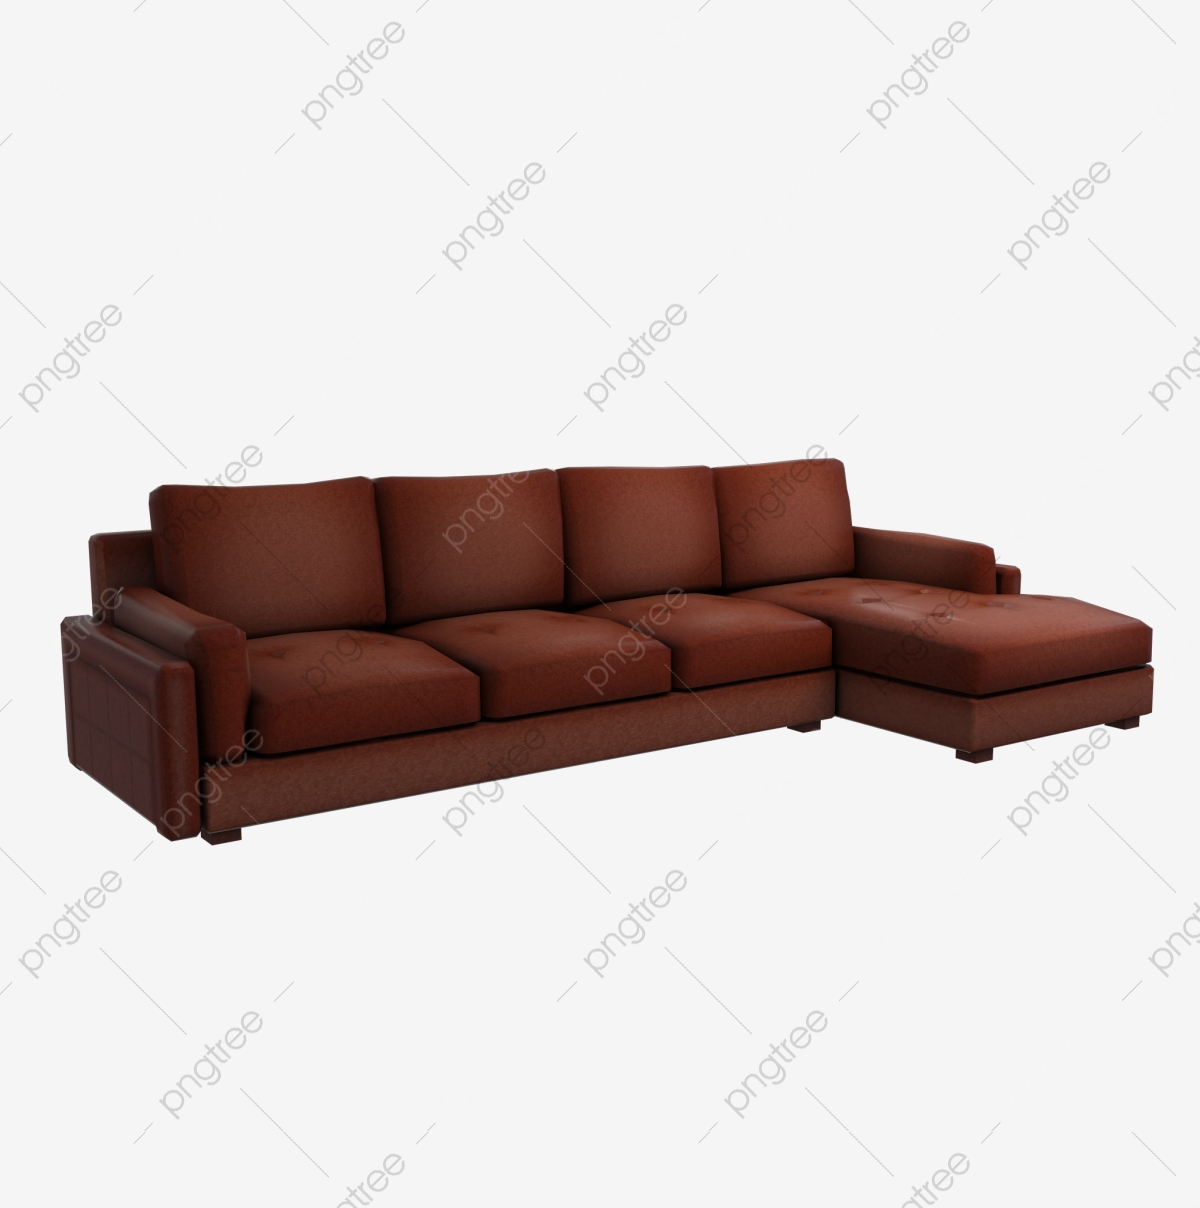 Superb Leather Sofa Sectional Sofa Furniture Solid Wood Bathroom Inzonedesignstudio Interior Chair Design Inzonedesignstudiocom